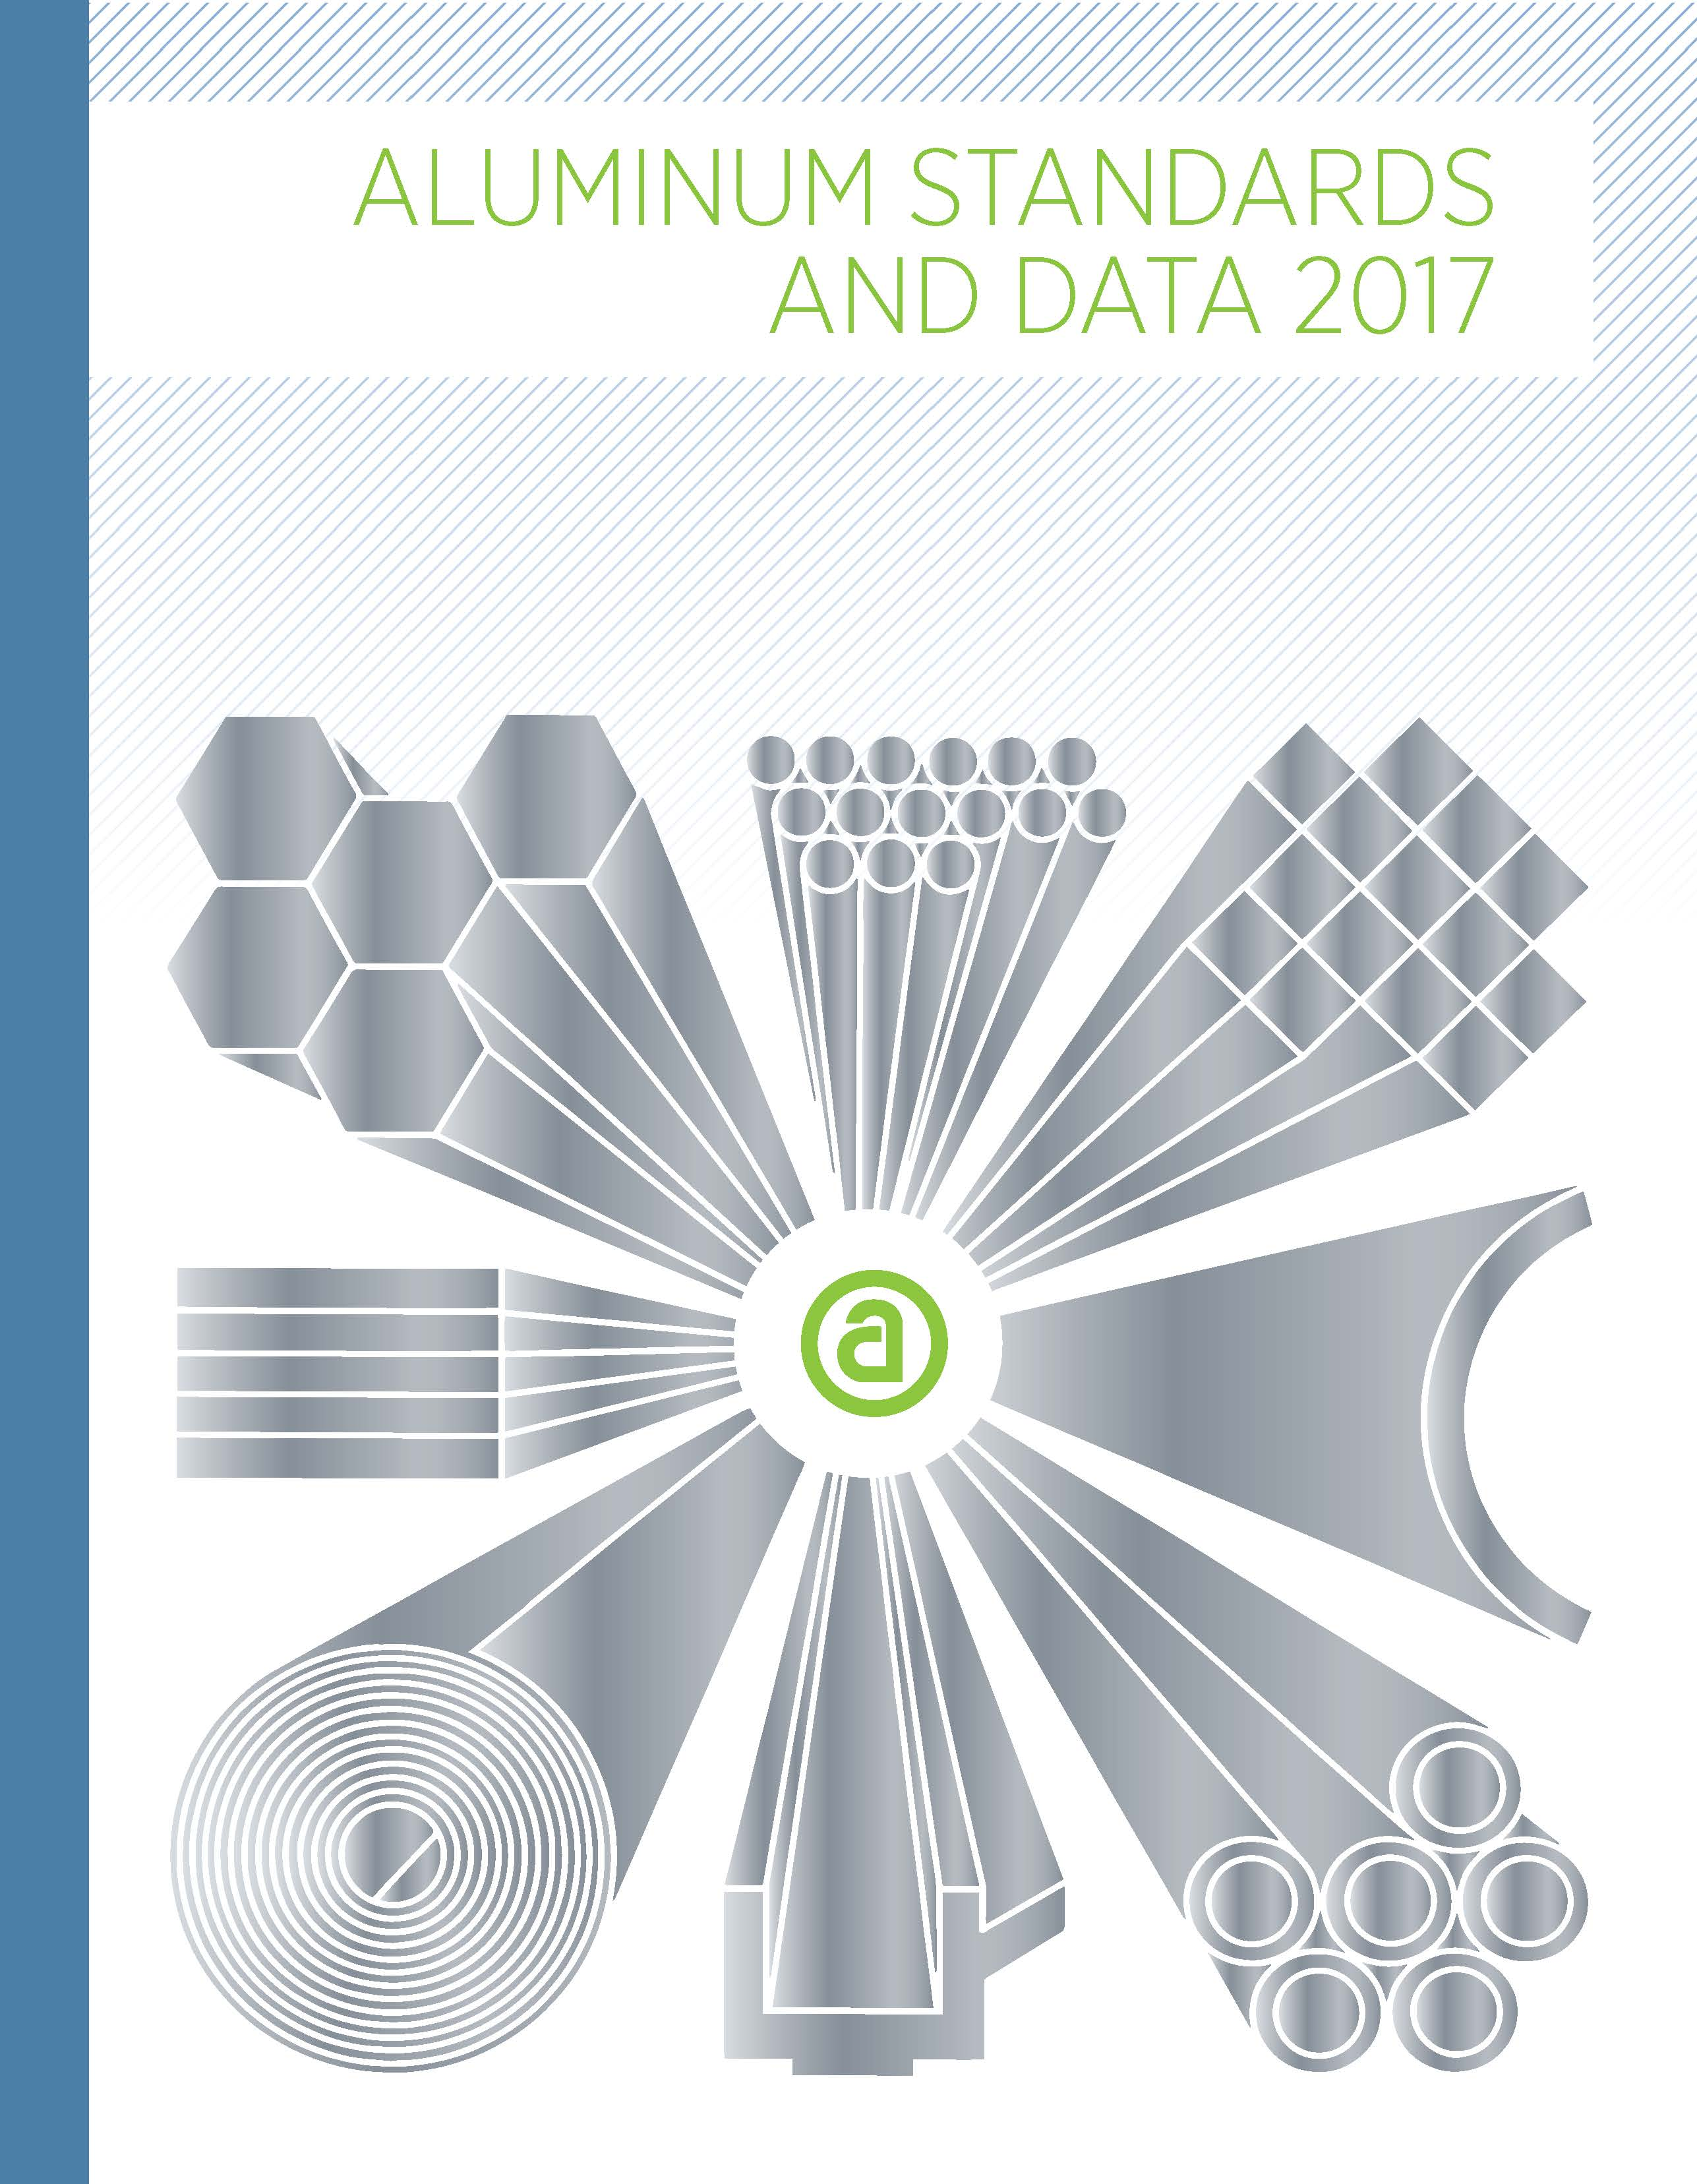 Aluminum Standards and Data 2017